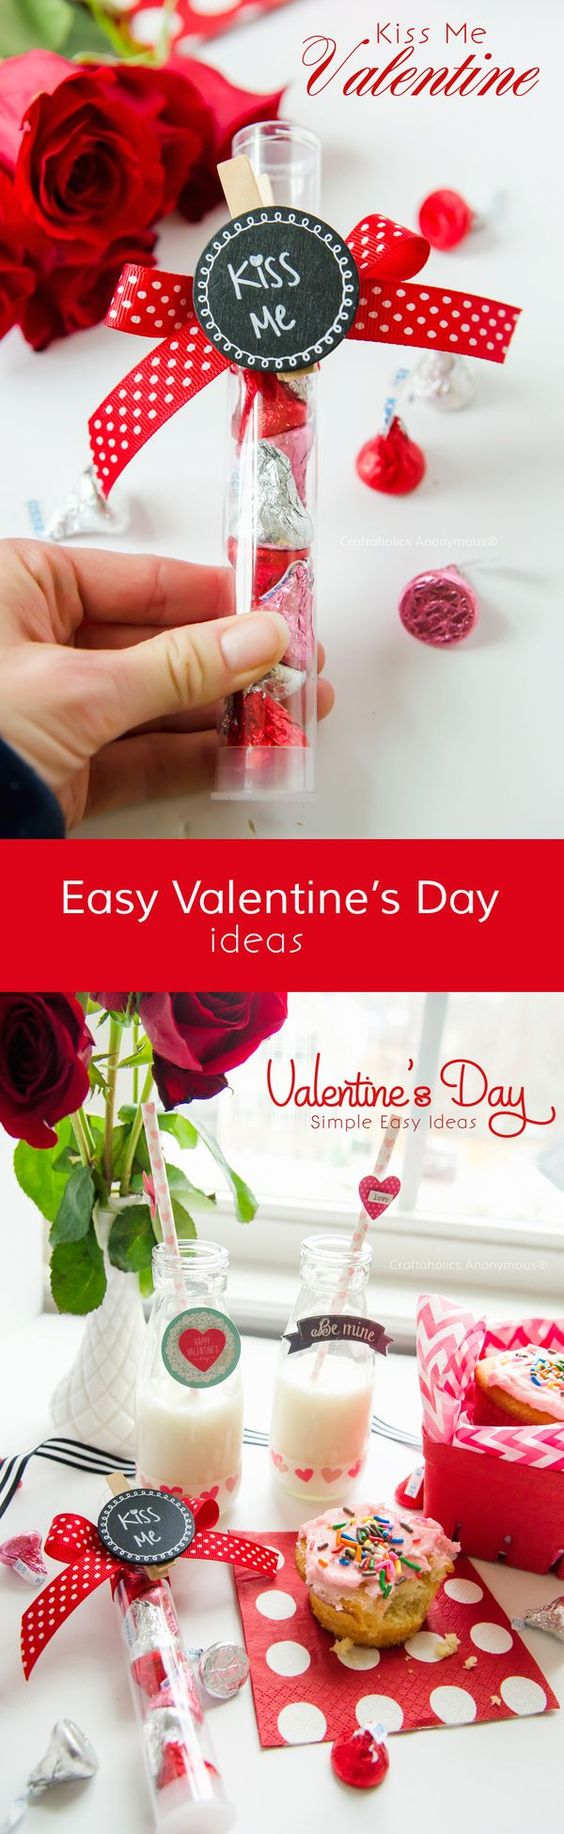 Quick and easy valentine crafts - Quick And Easy Valentine Craft Ideas That Can Be Done On A Small Budget